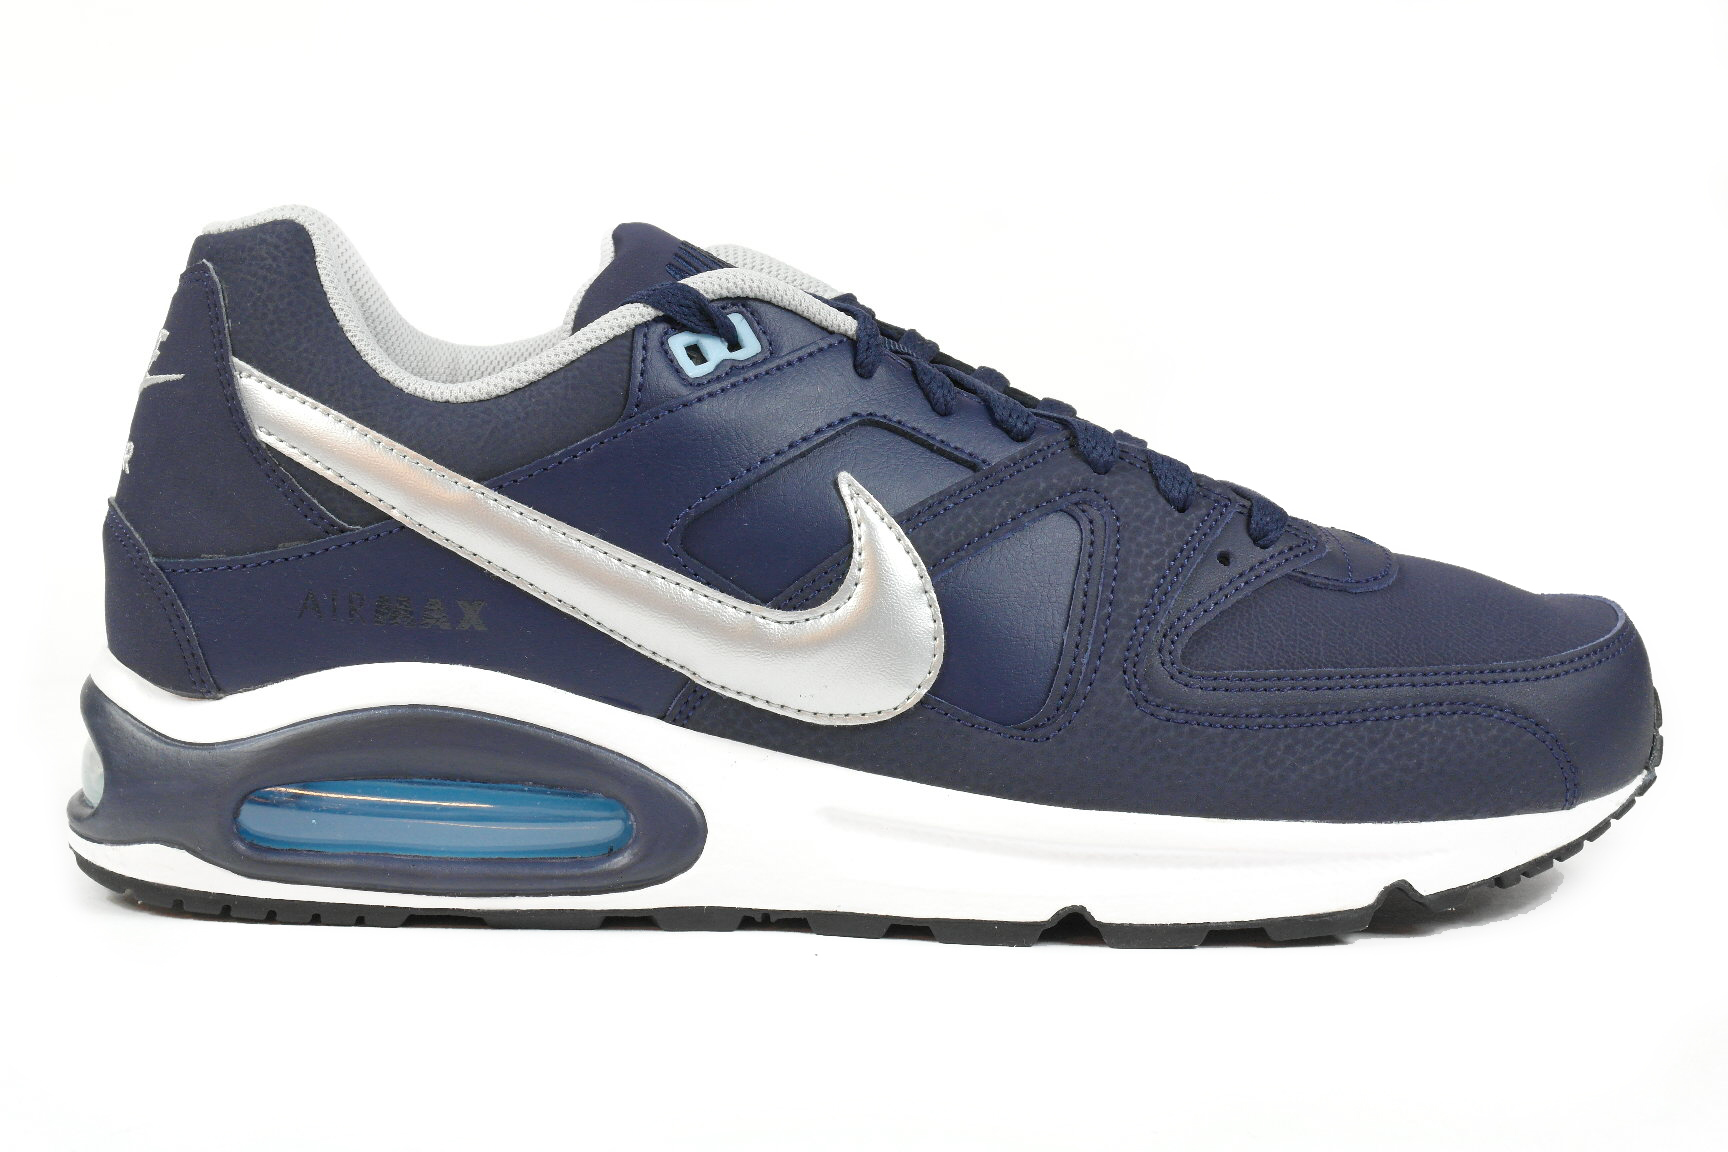 wholesale dealer 01b7b e0707 nike-air-max-command-heren-sneakers-marine 1500x1500 22884.png